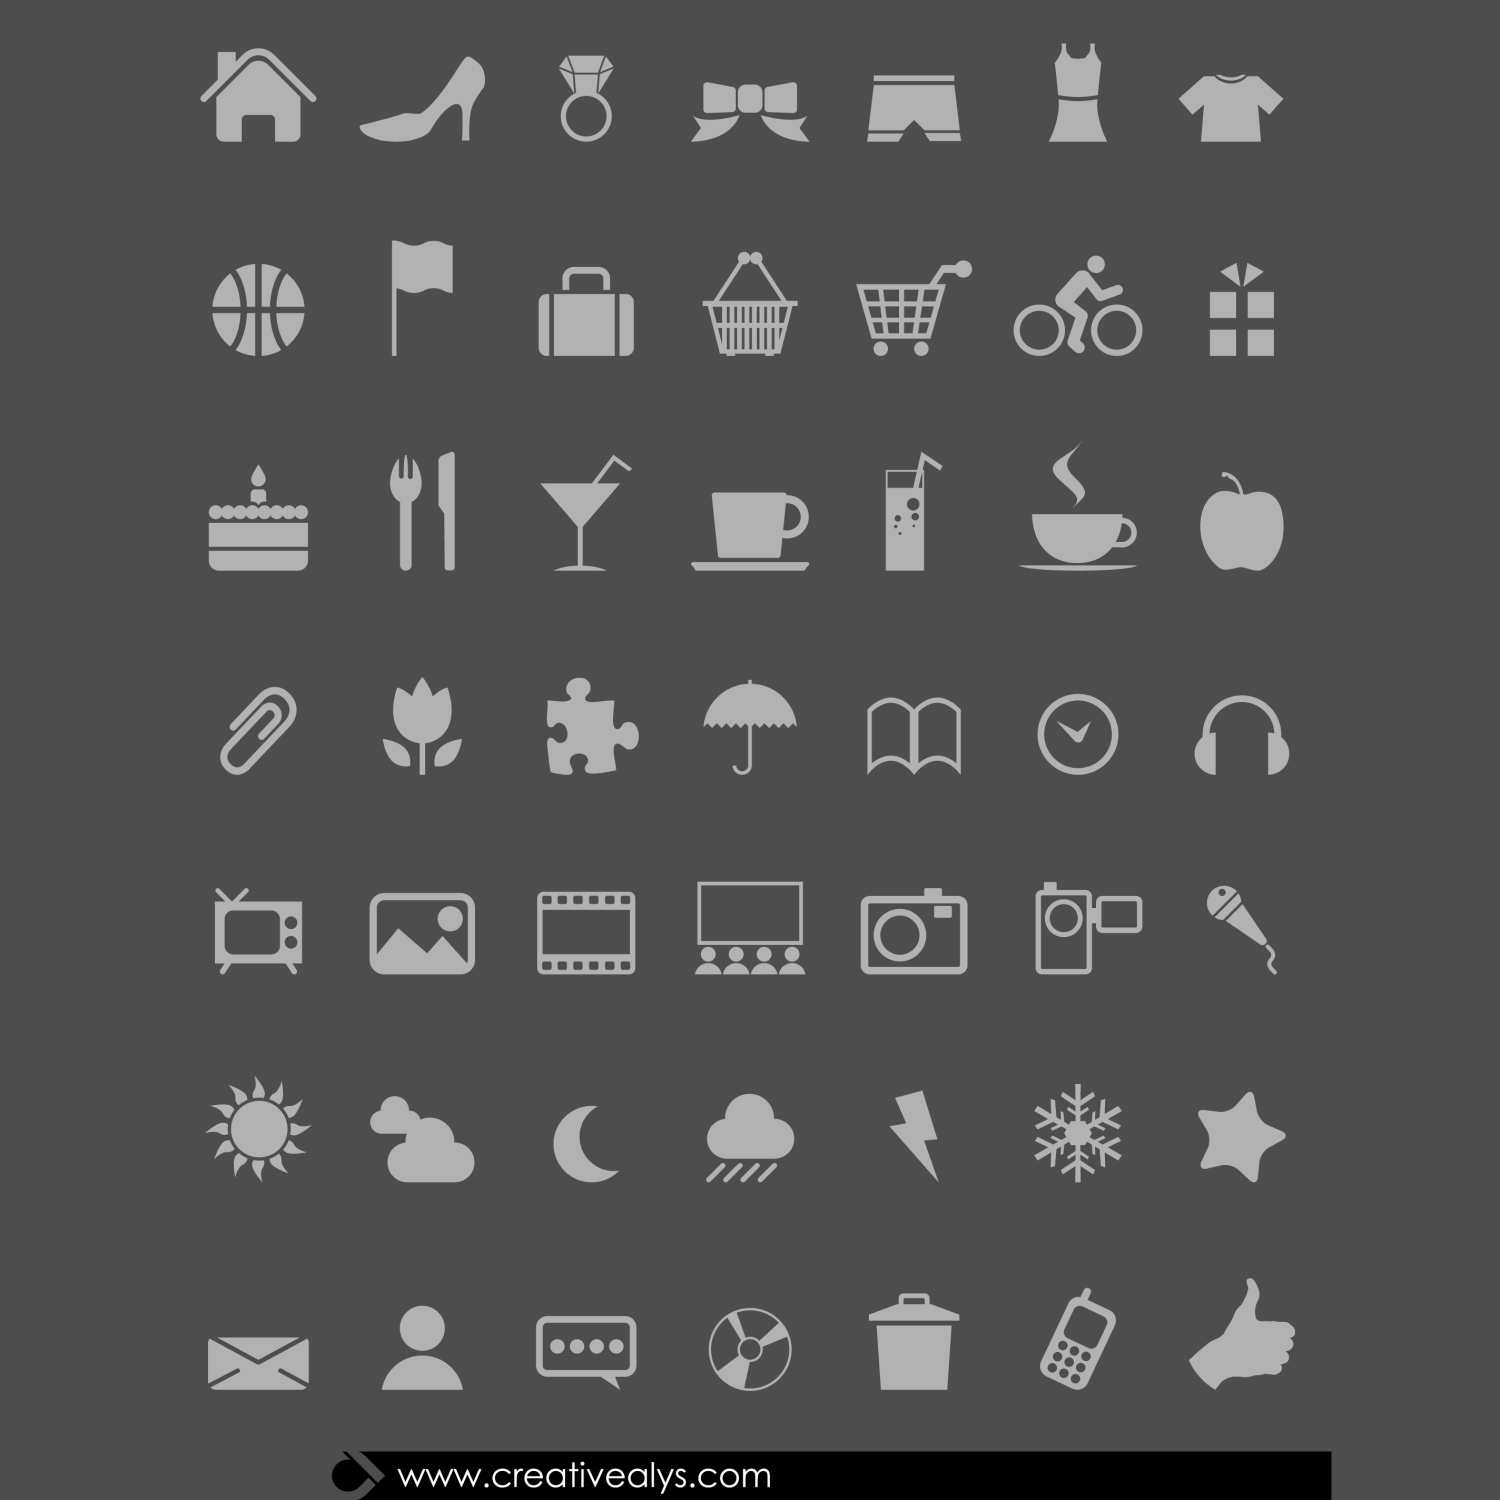 Every designer should have some handy modern web icons to be placed on web designs for different purposes